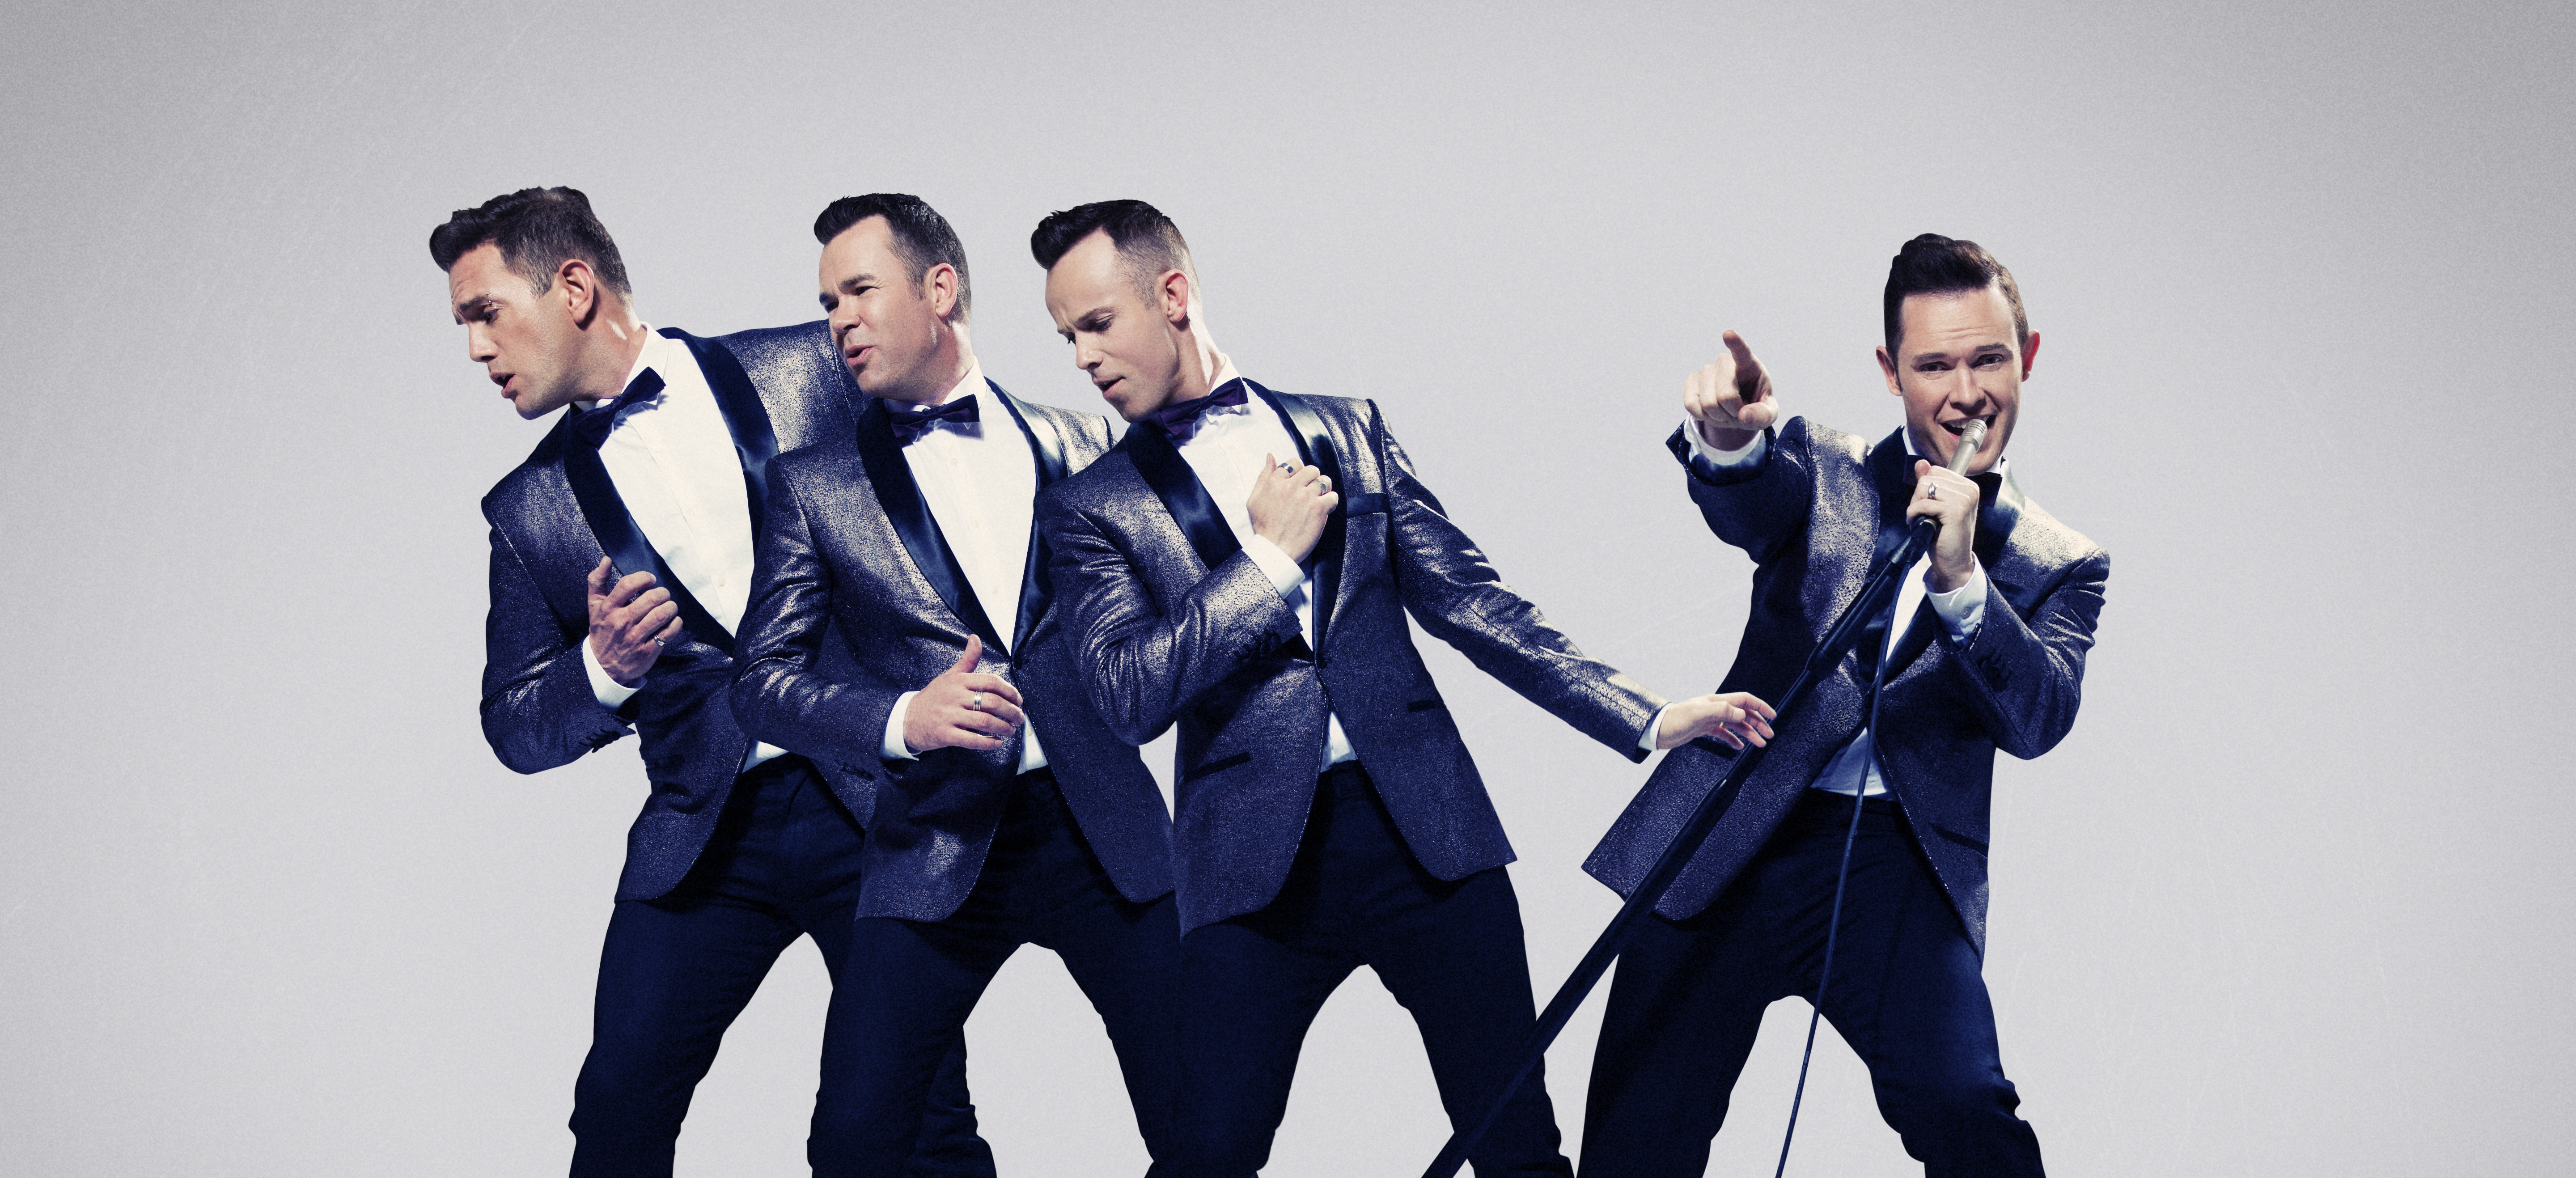 HUMAN NATURE'S ALBUM OUT NOW & TOUR ON SALE NOW!